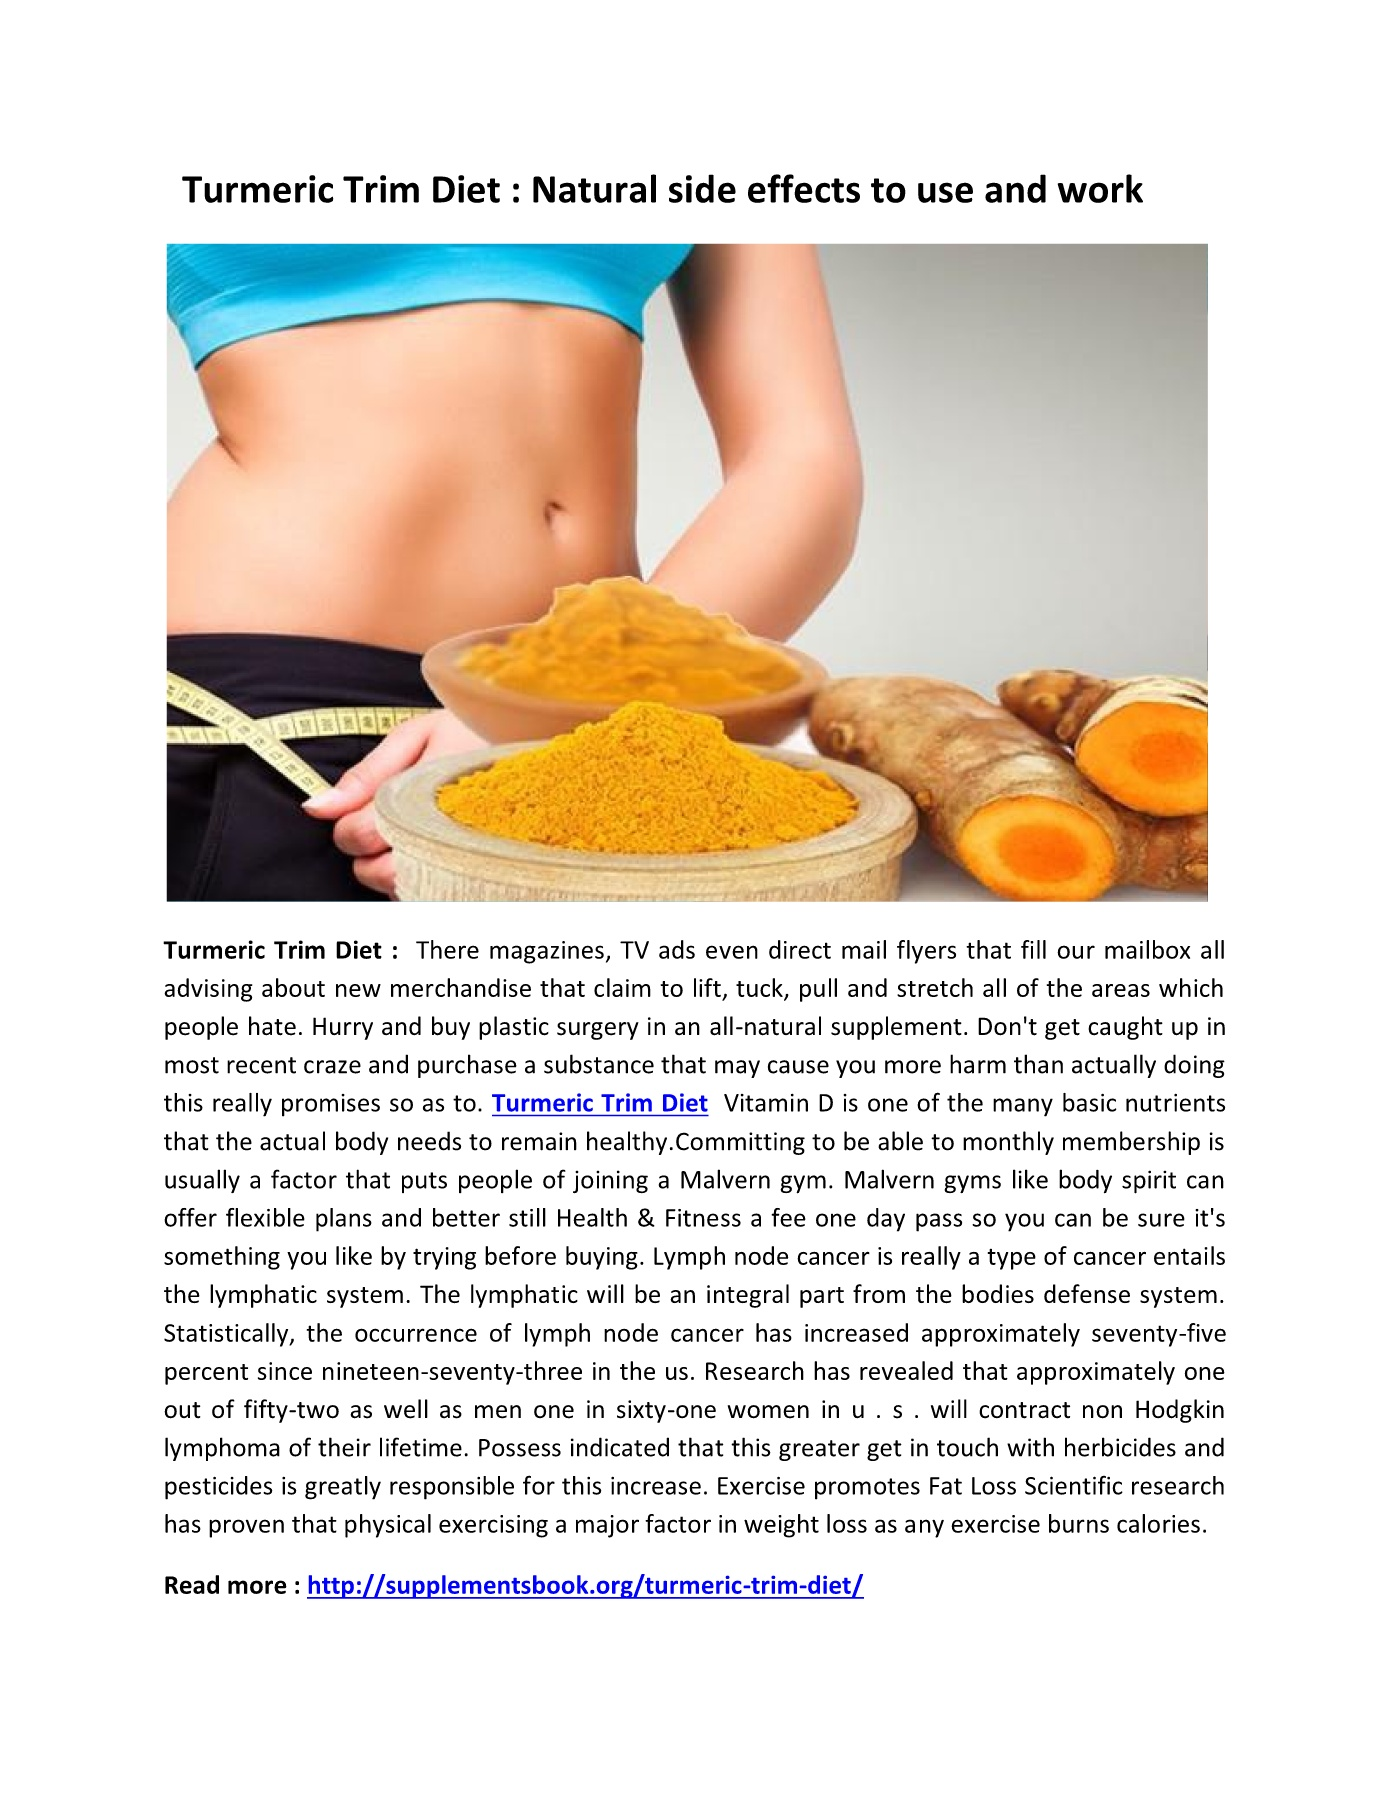 how much is trumeic trim diet